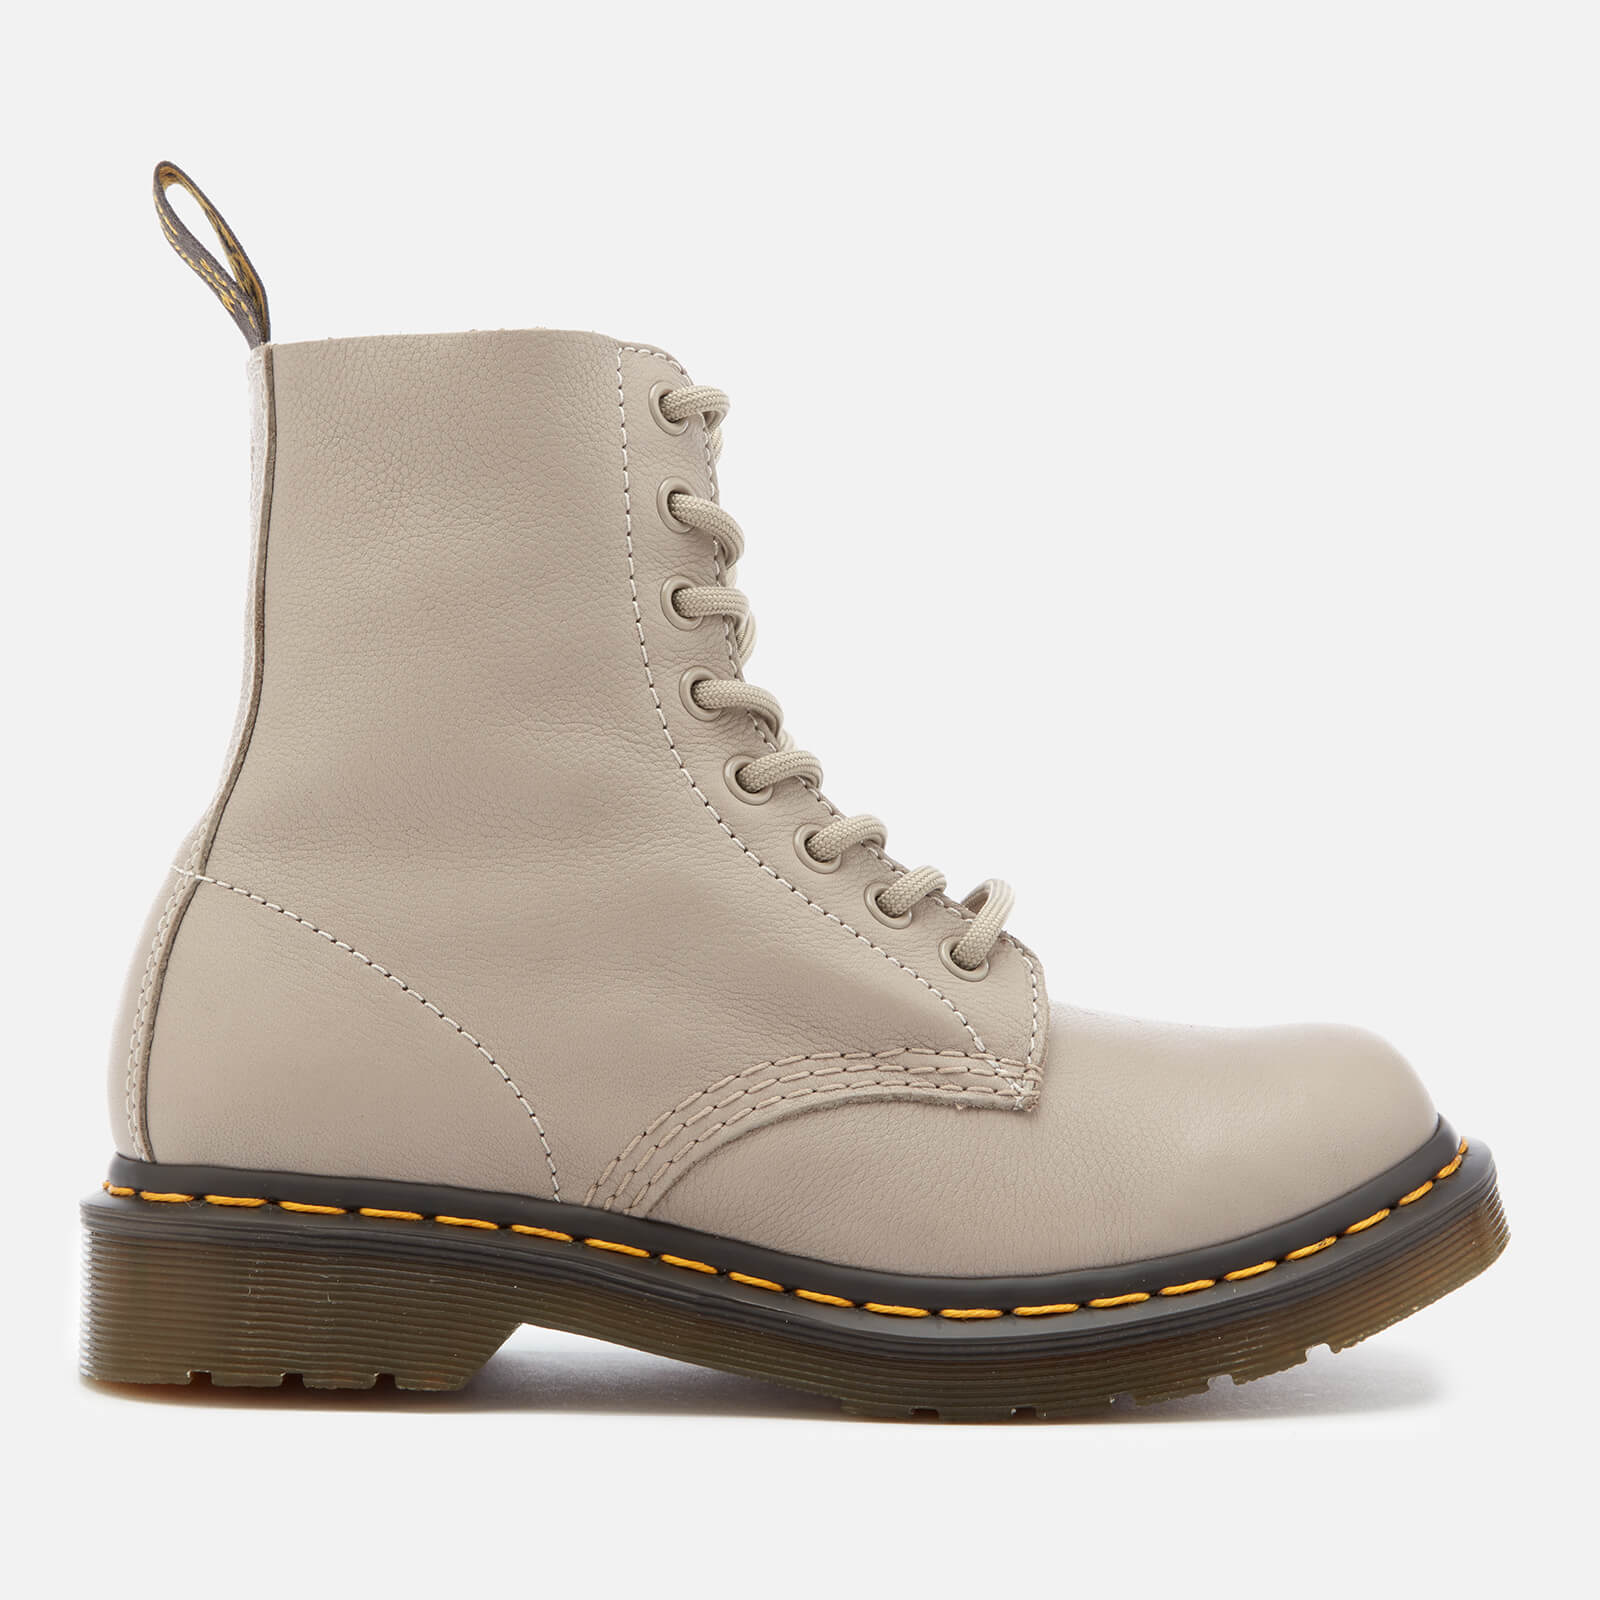 b06bd21b873166 Dr. Martens Women's 1460 Virginia Leather Pascal 8-Eye Boots - Taupe - Free  UK Delivery over £50